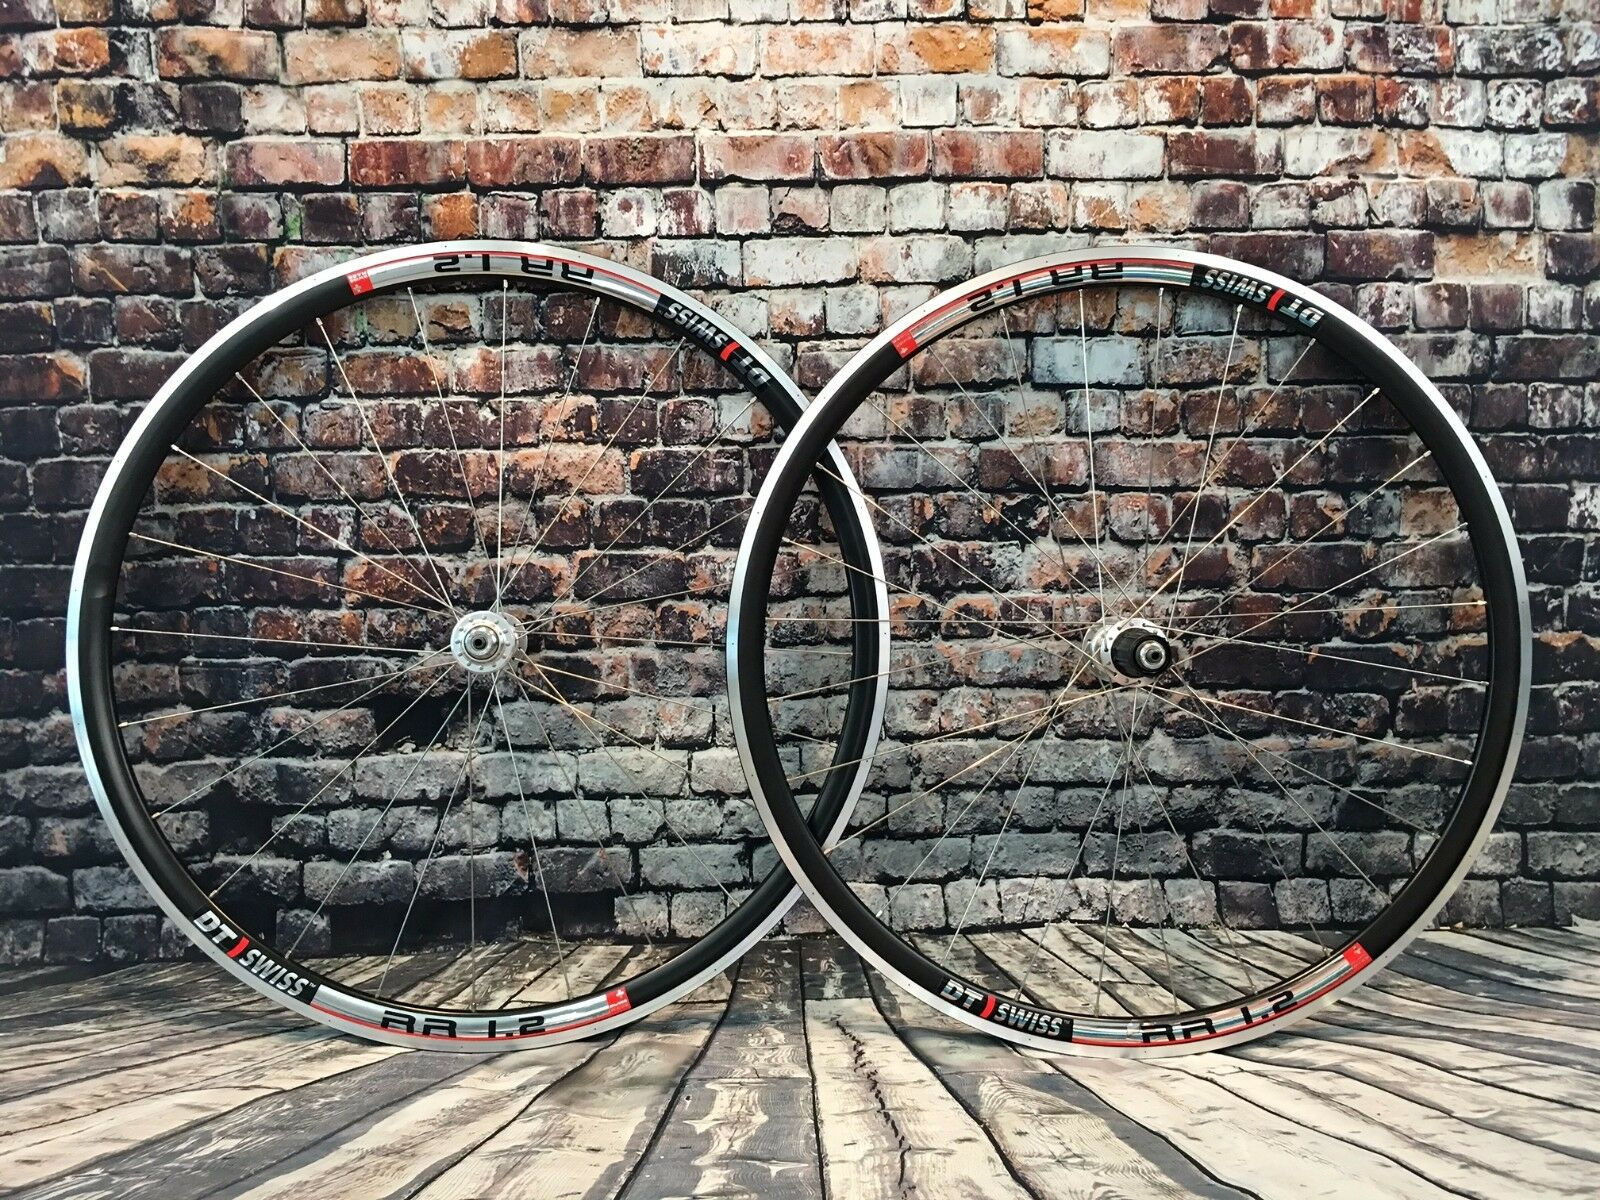 DT Swiss RR585 Wheel Set, Shimano Ultegra 8 9 10 Spd Hubs,700c Road Bike Wheels